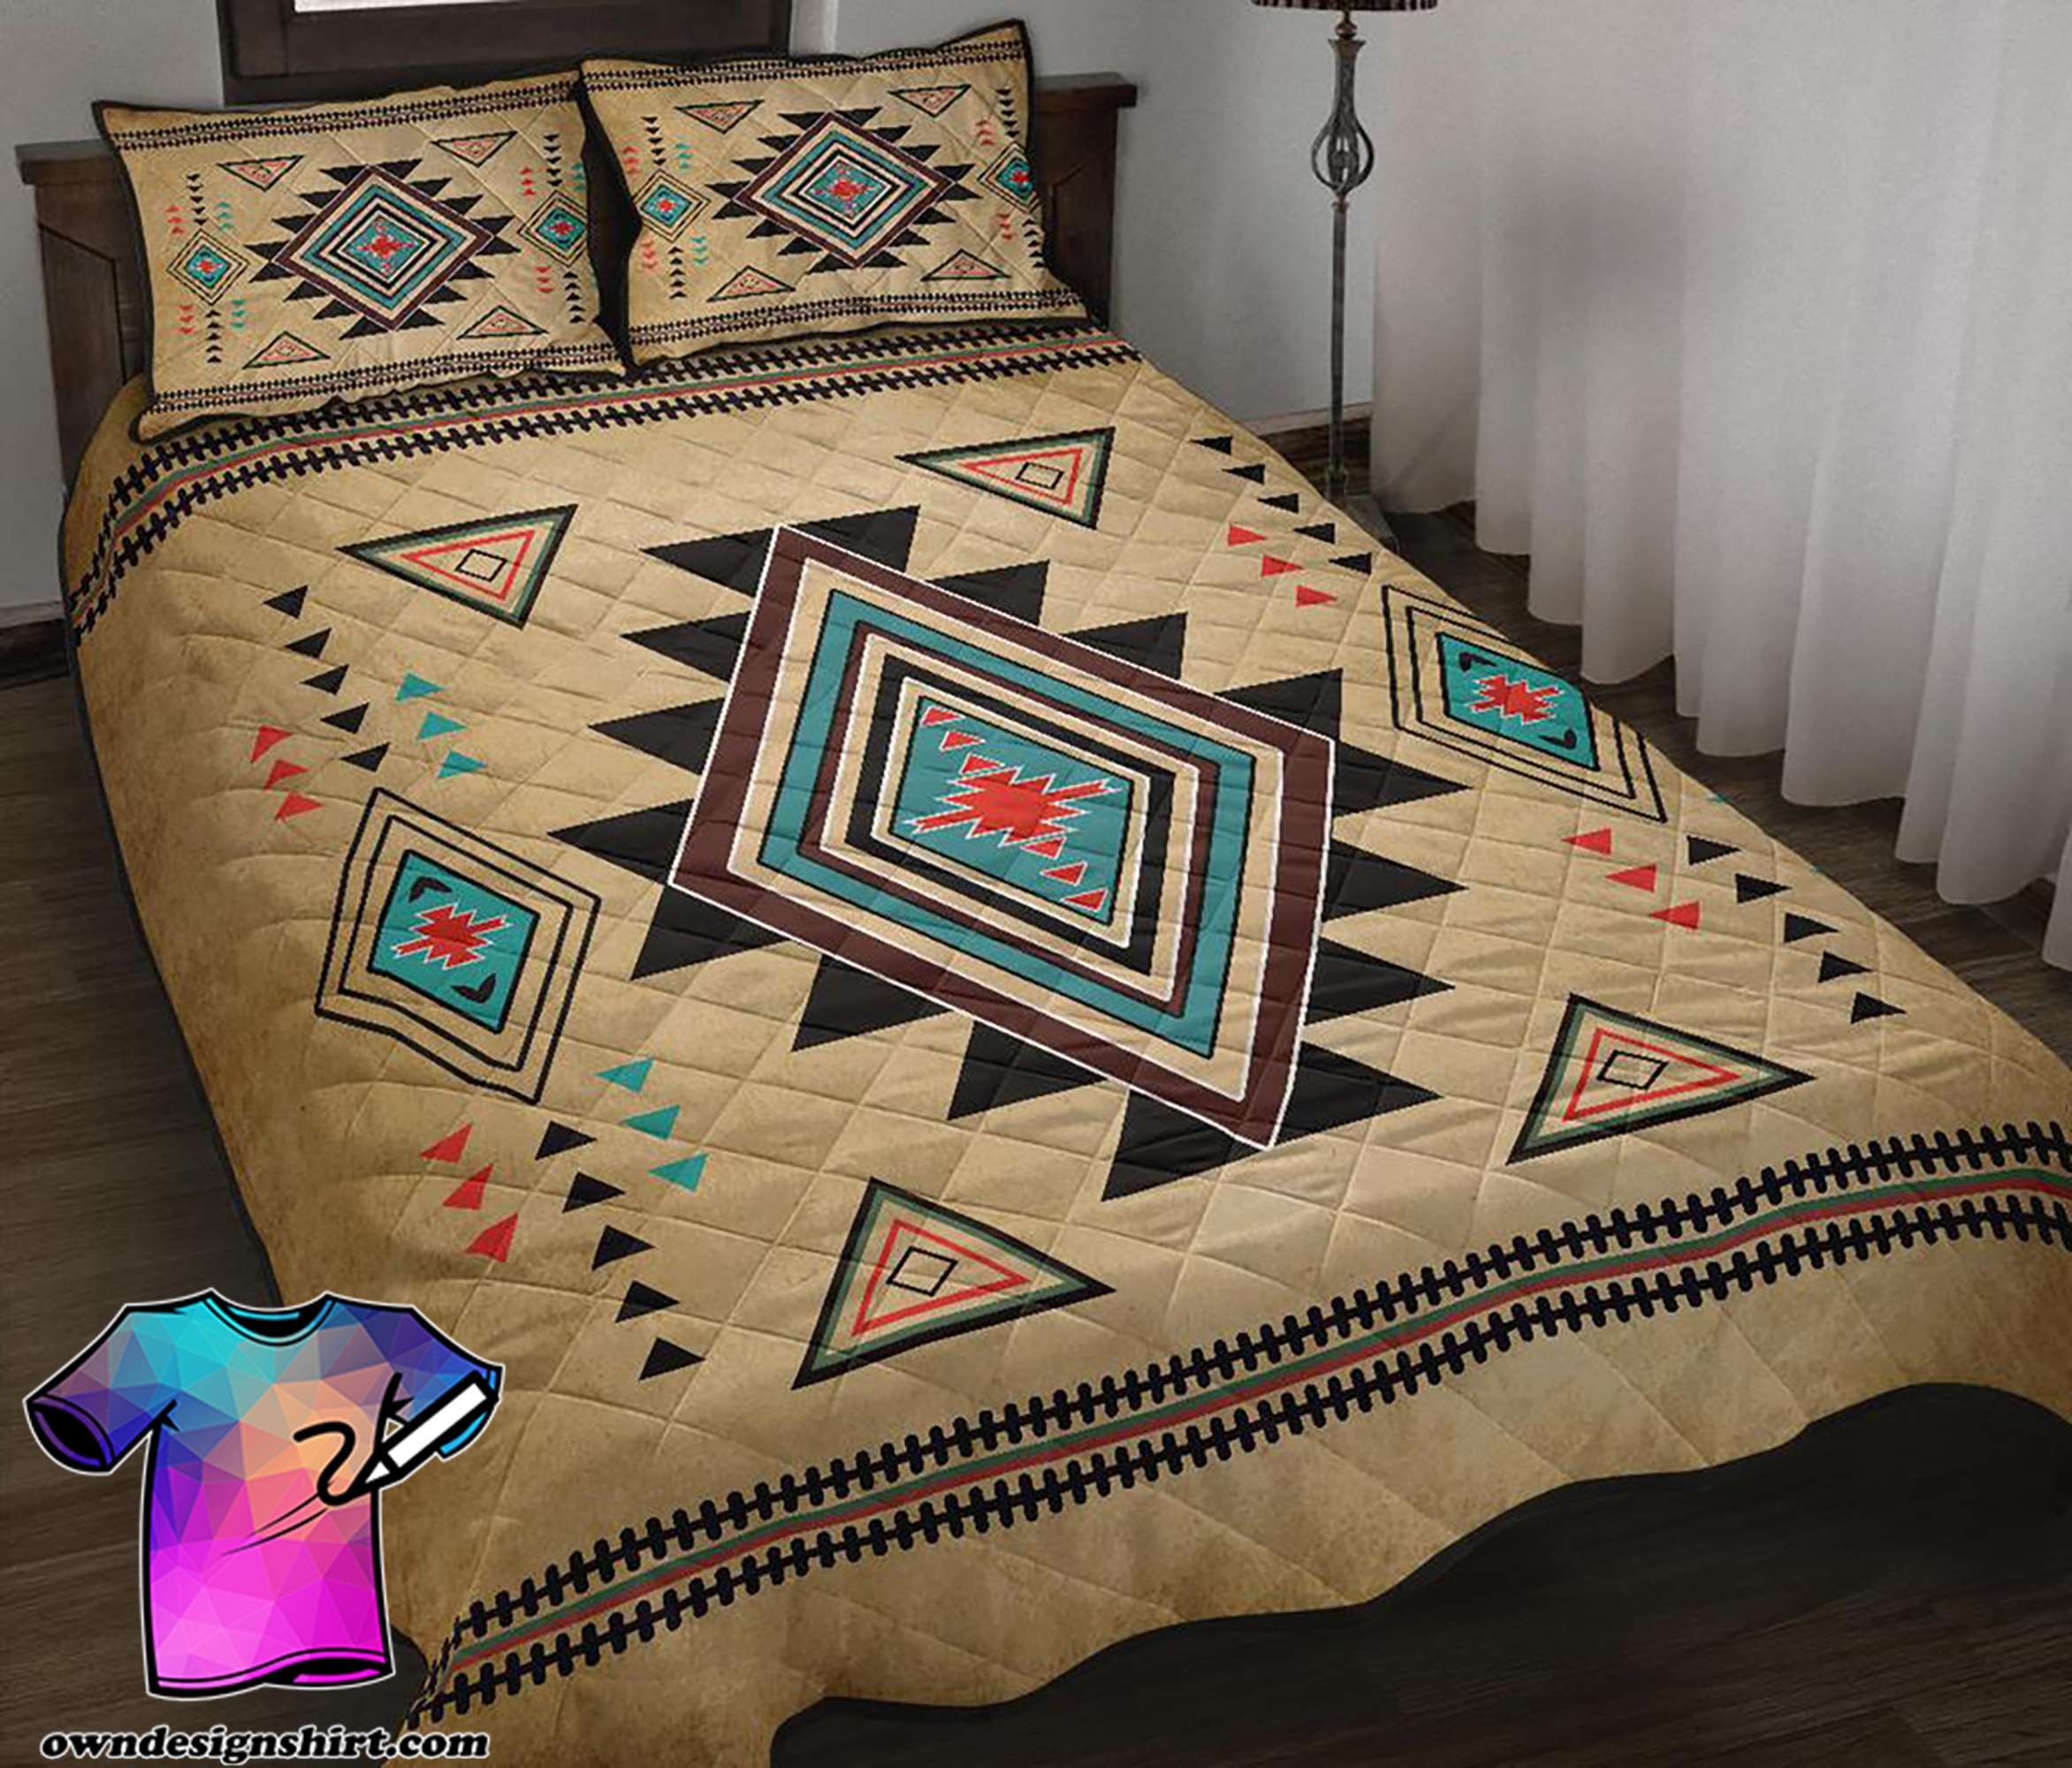 South west native american quilt 1